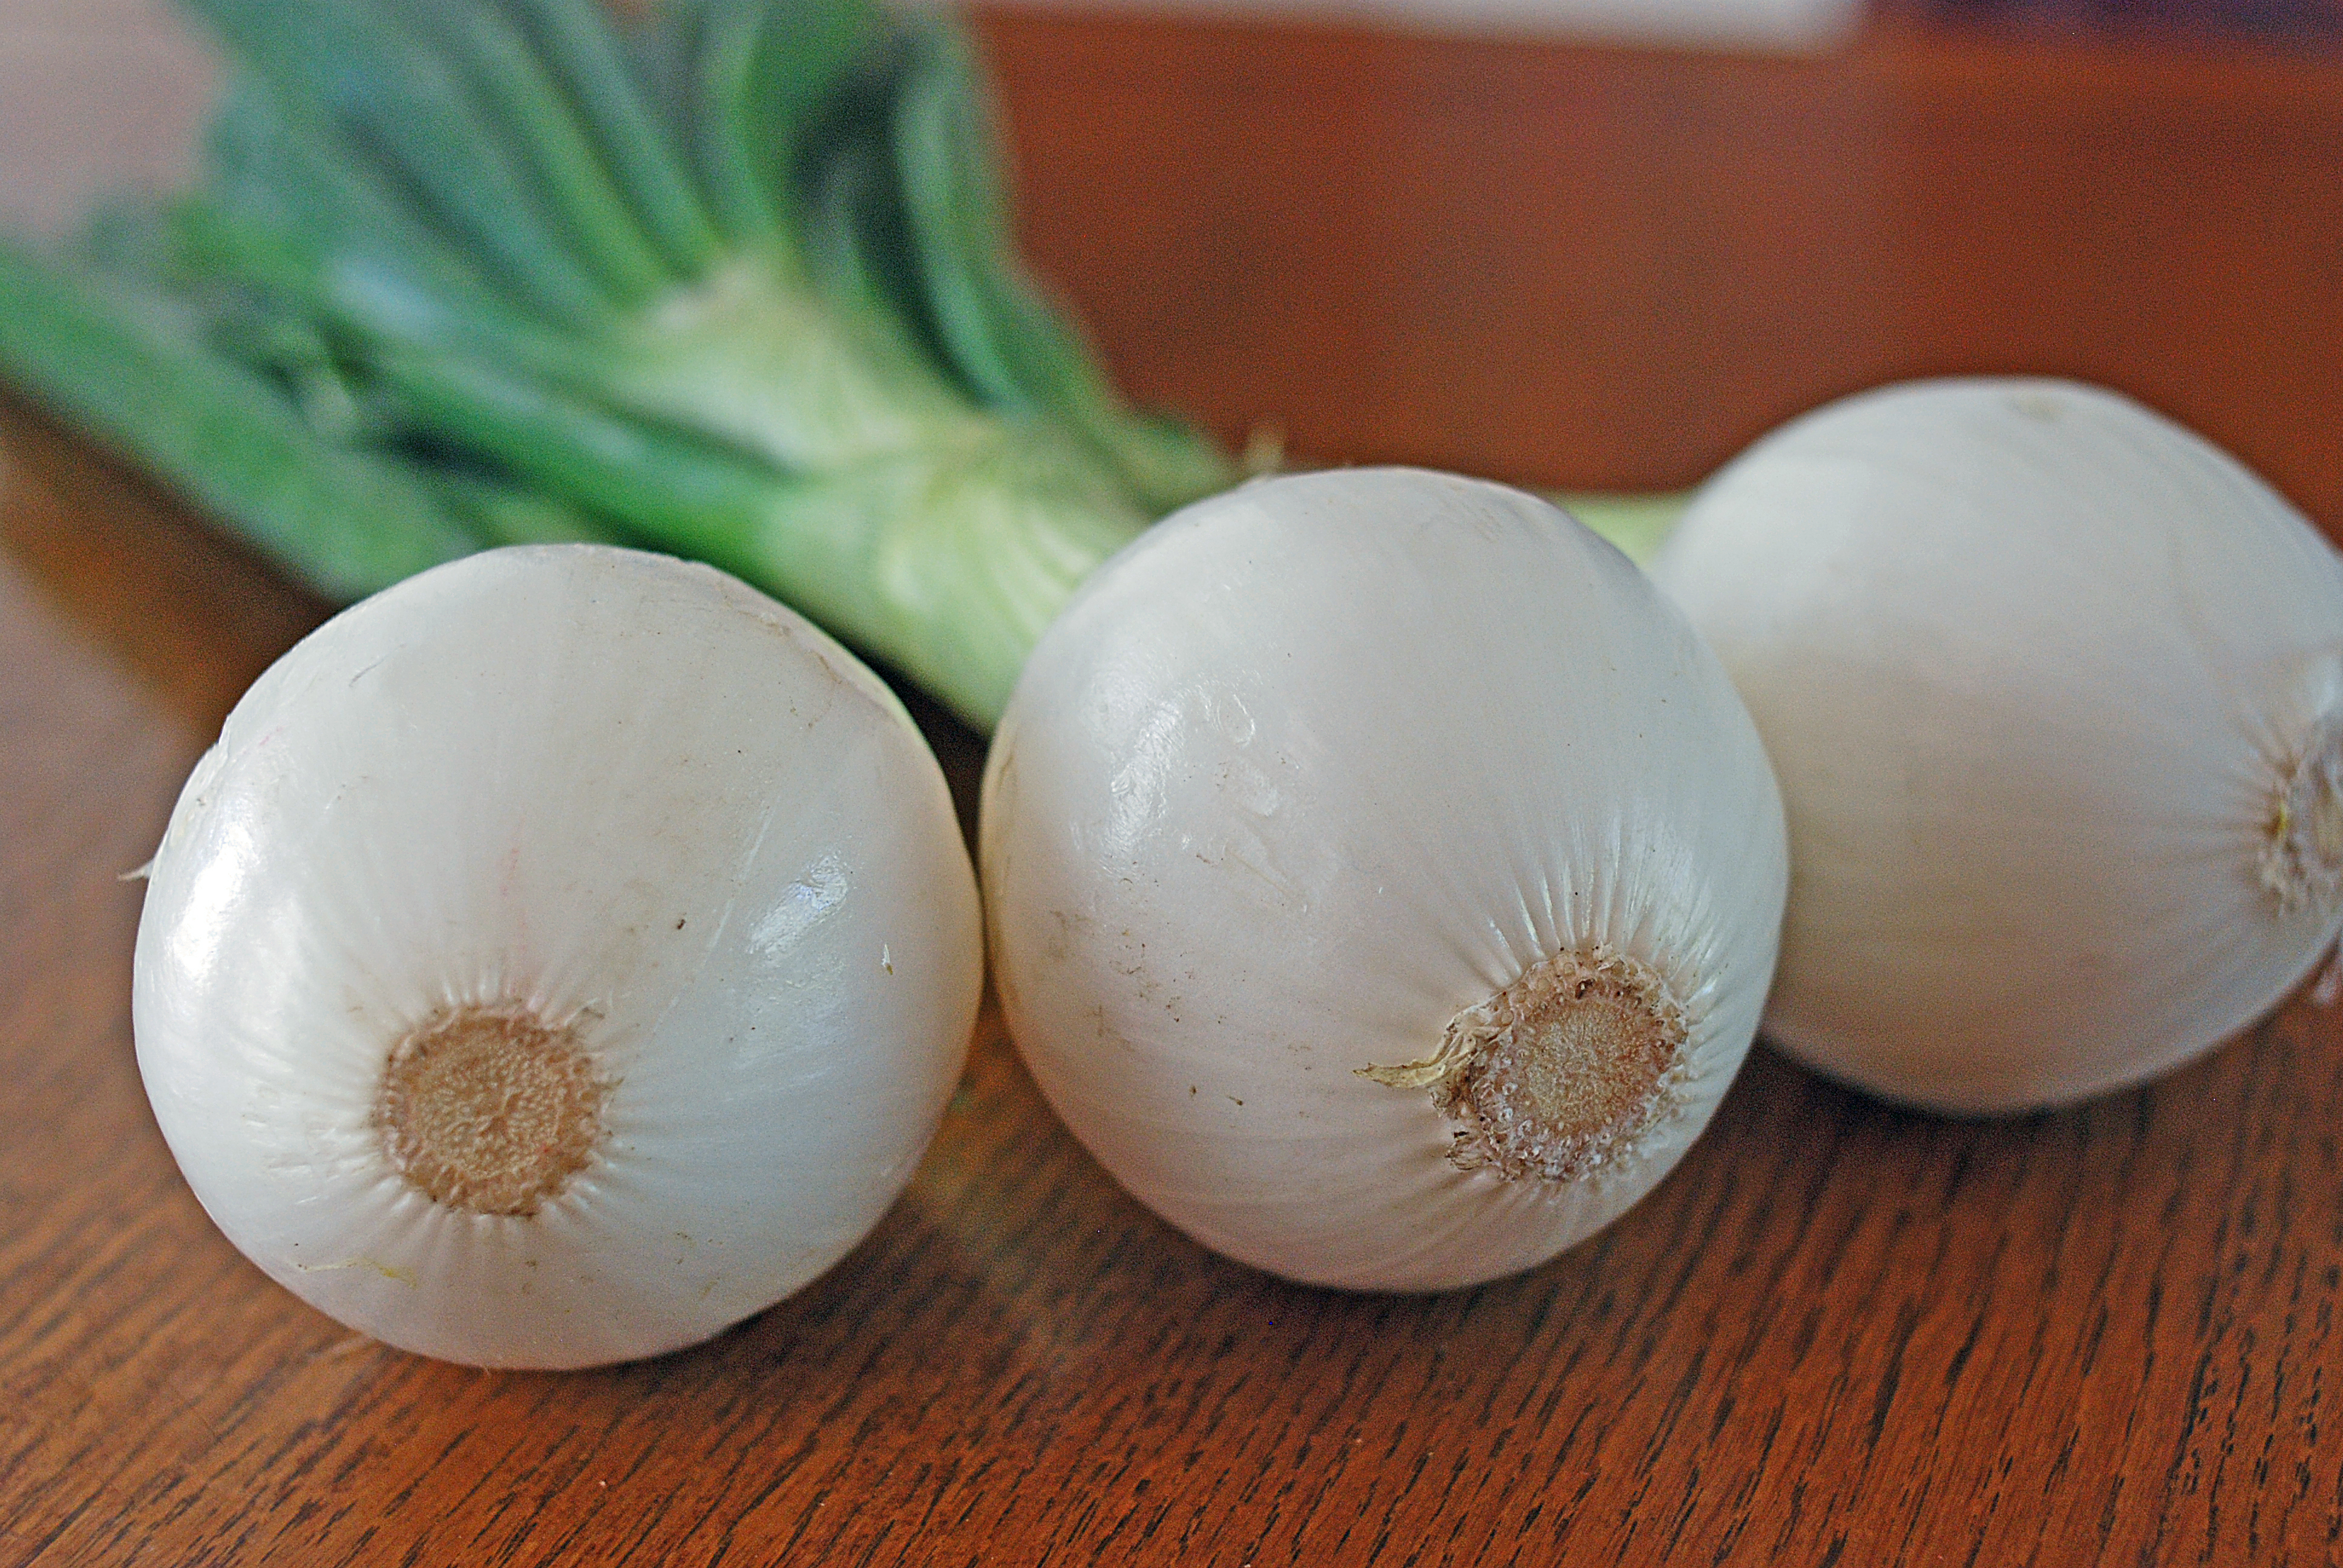 Spring Onions have a fully formed bulb